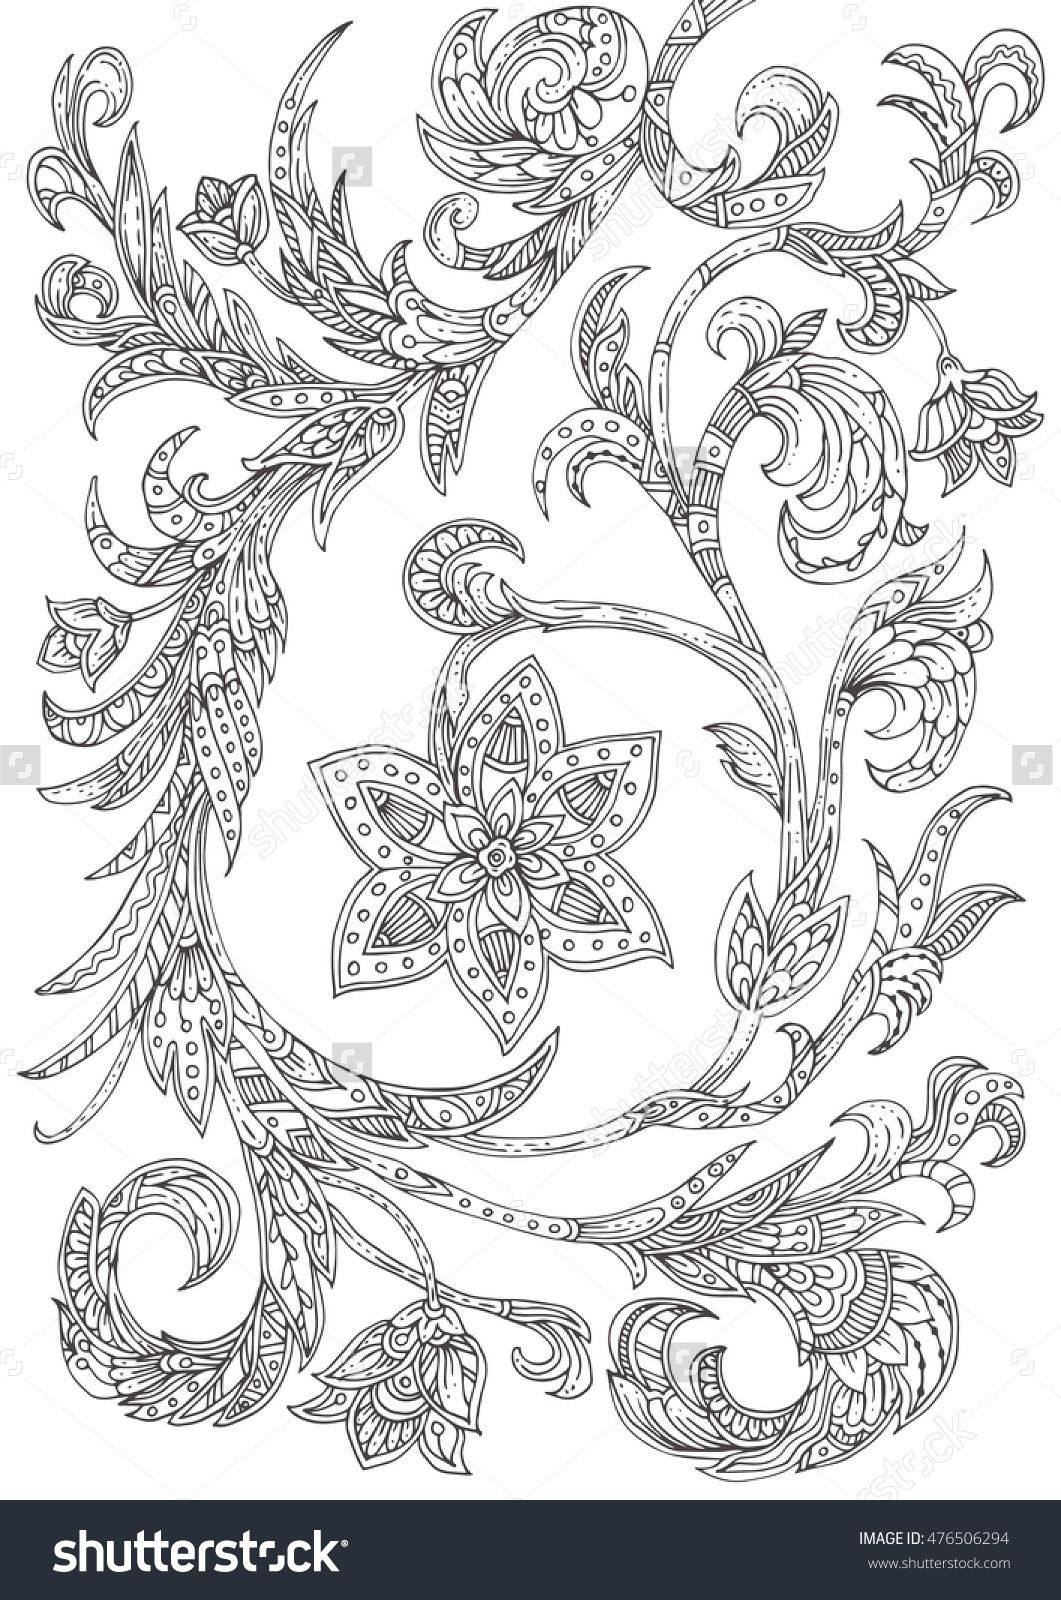 Handdrawn italian floral ornament pattern in black and white